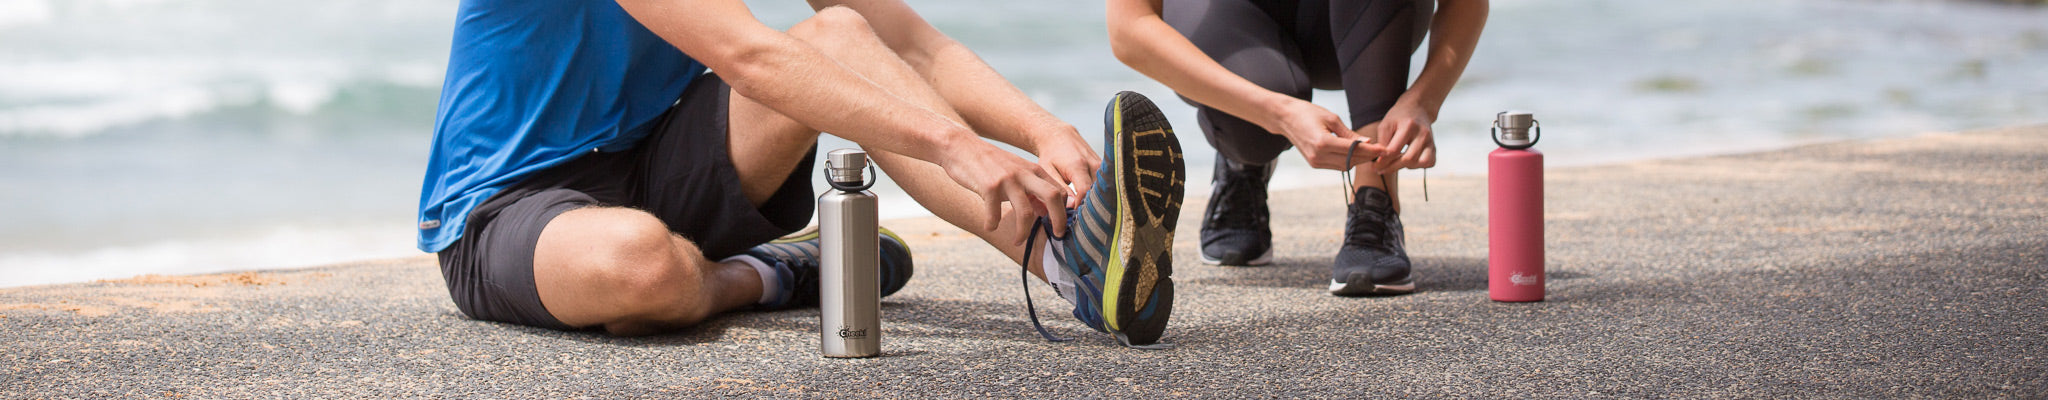 Insulated Water Bottles for Walking & Hiking